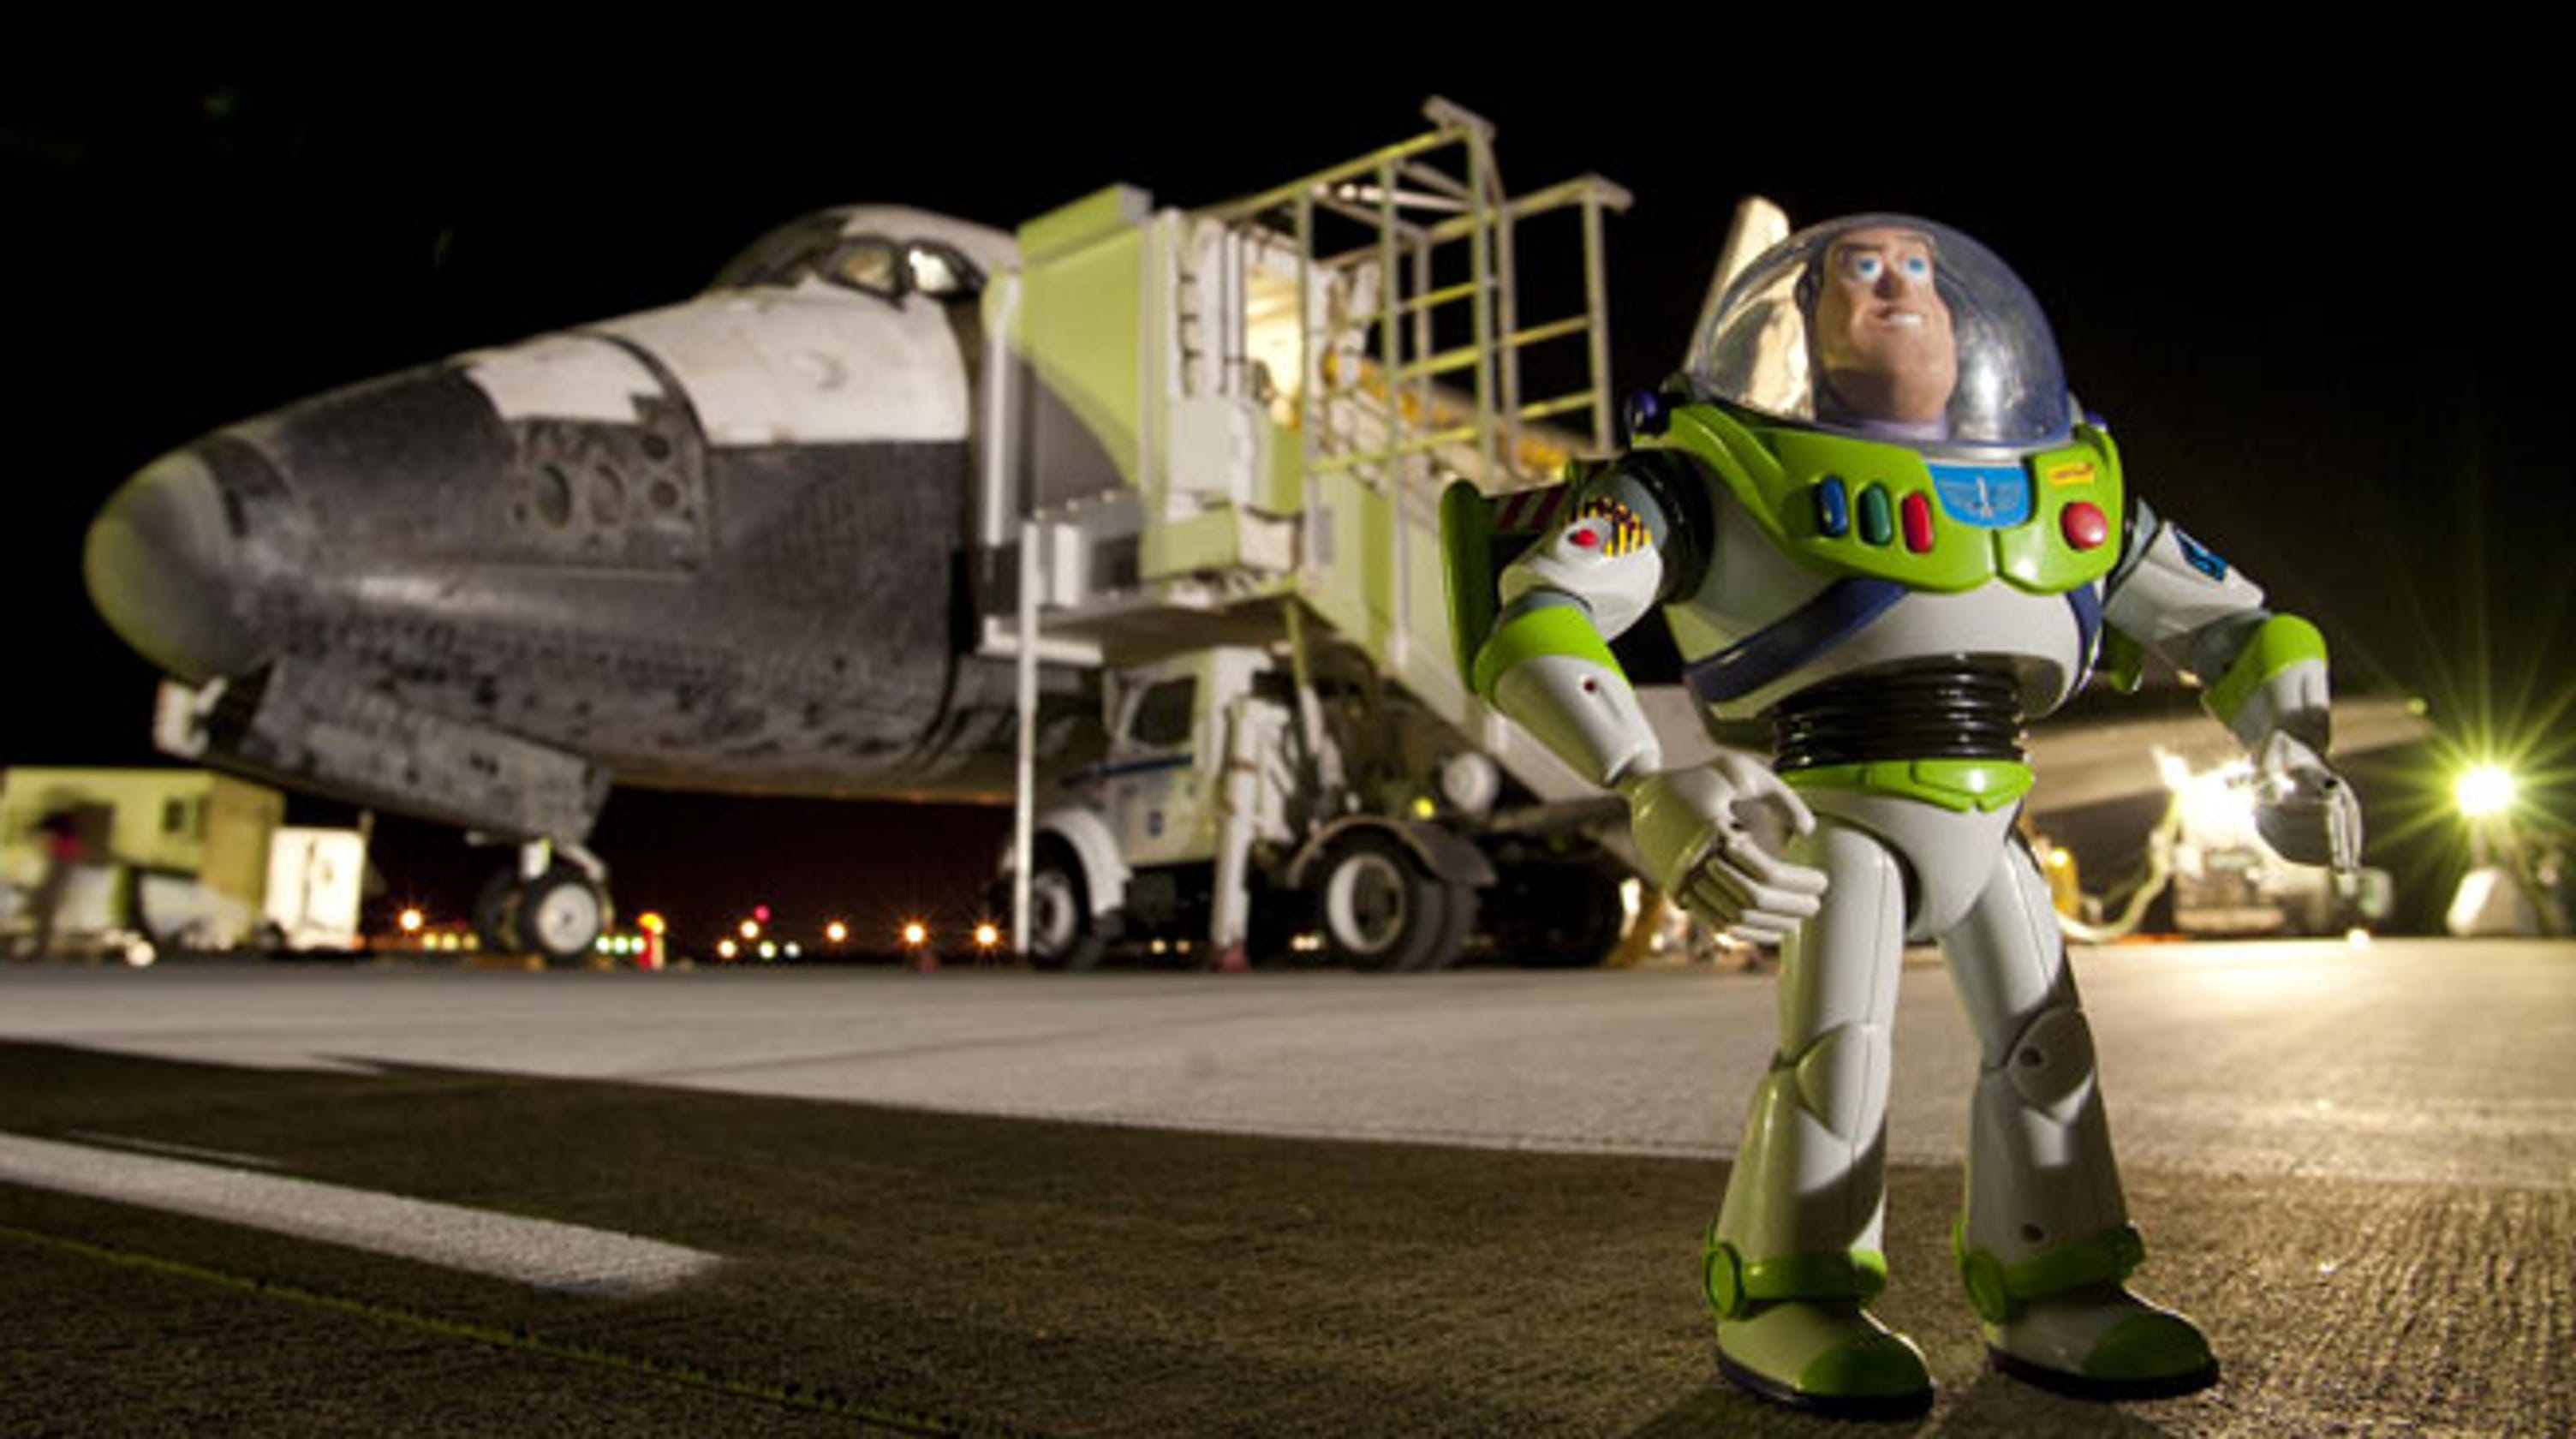 Know about the lucky, weird stuff that got a Space Ride